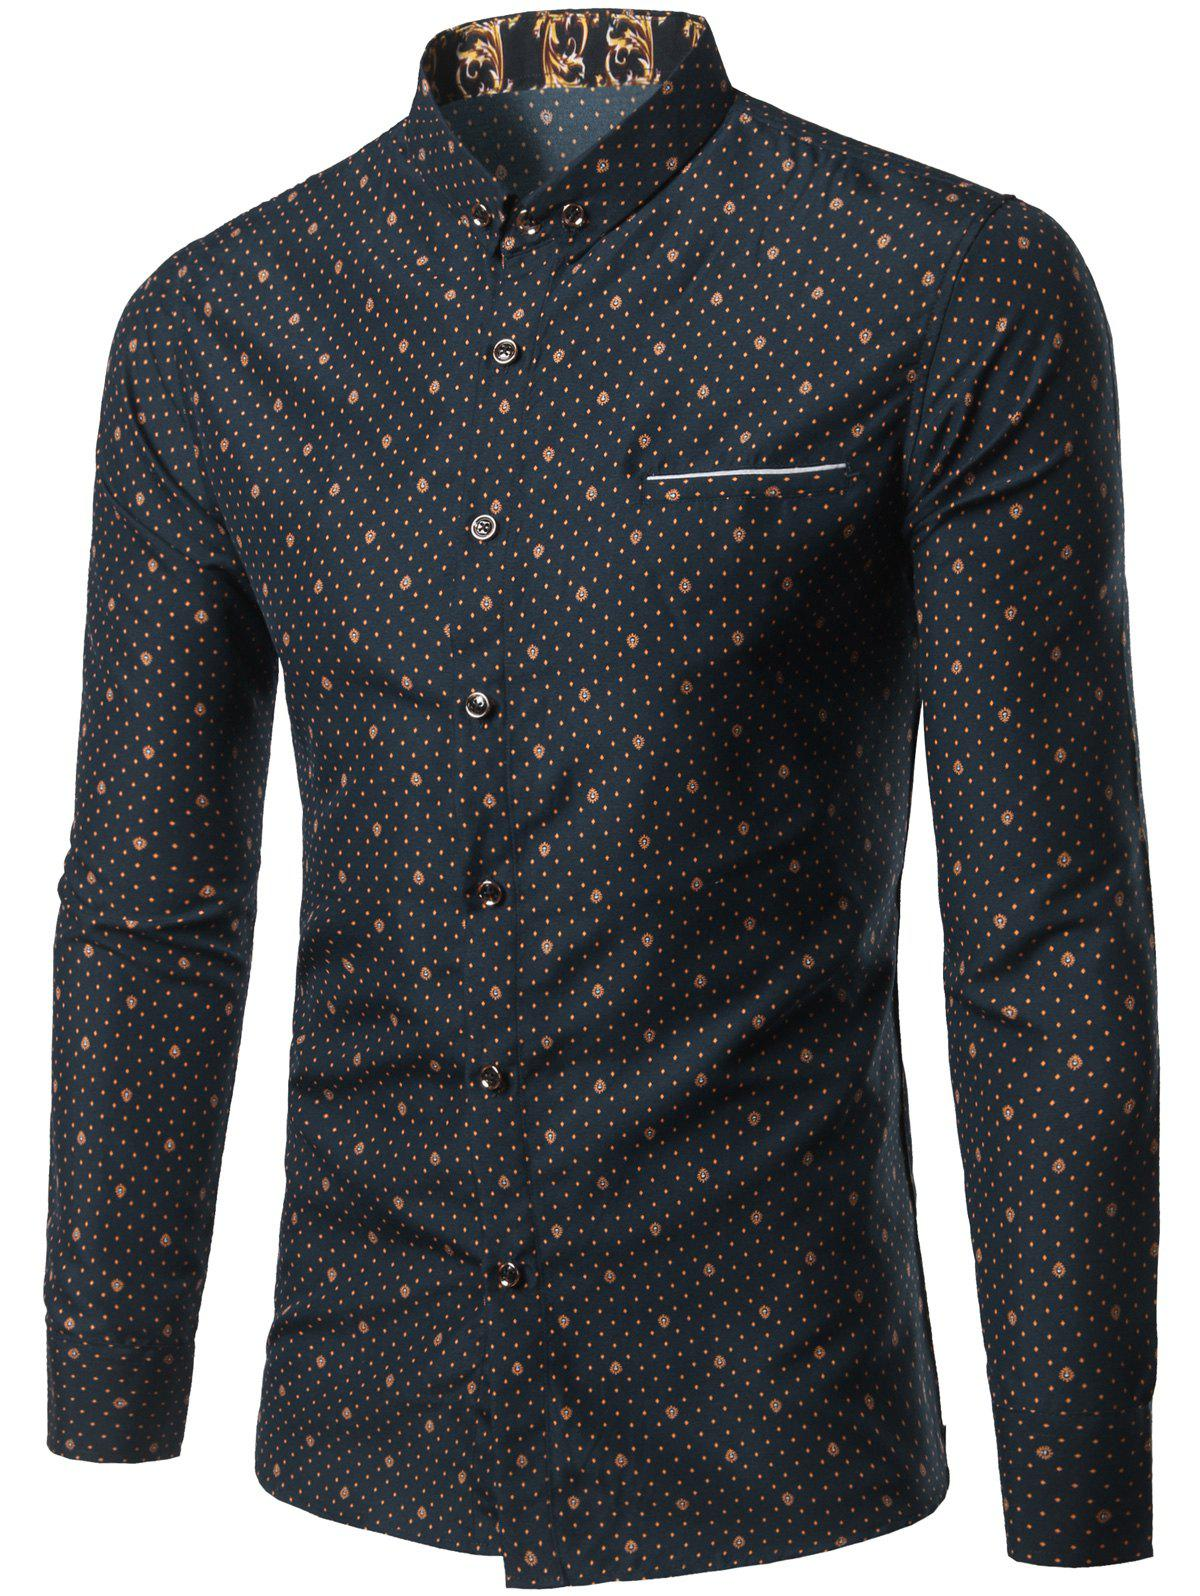 Small Polka Dot Printed Long Sleeve Shirt - CADETBLUE M